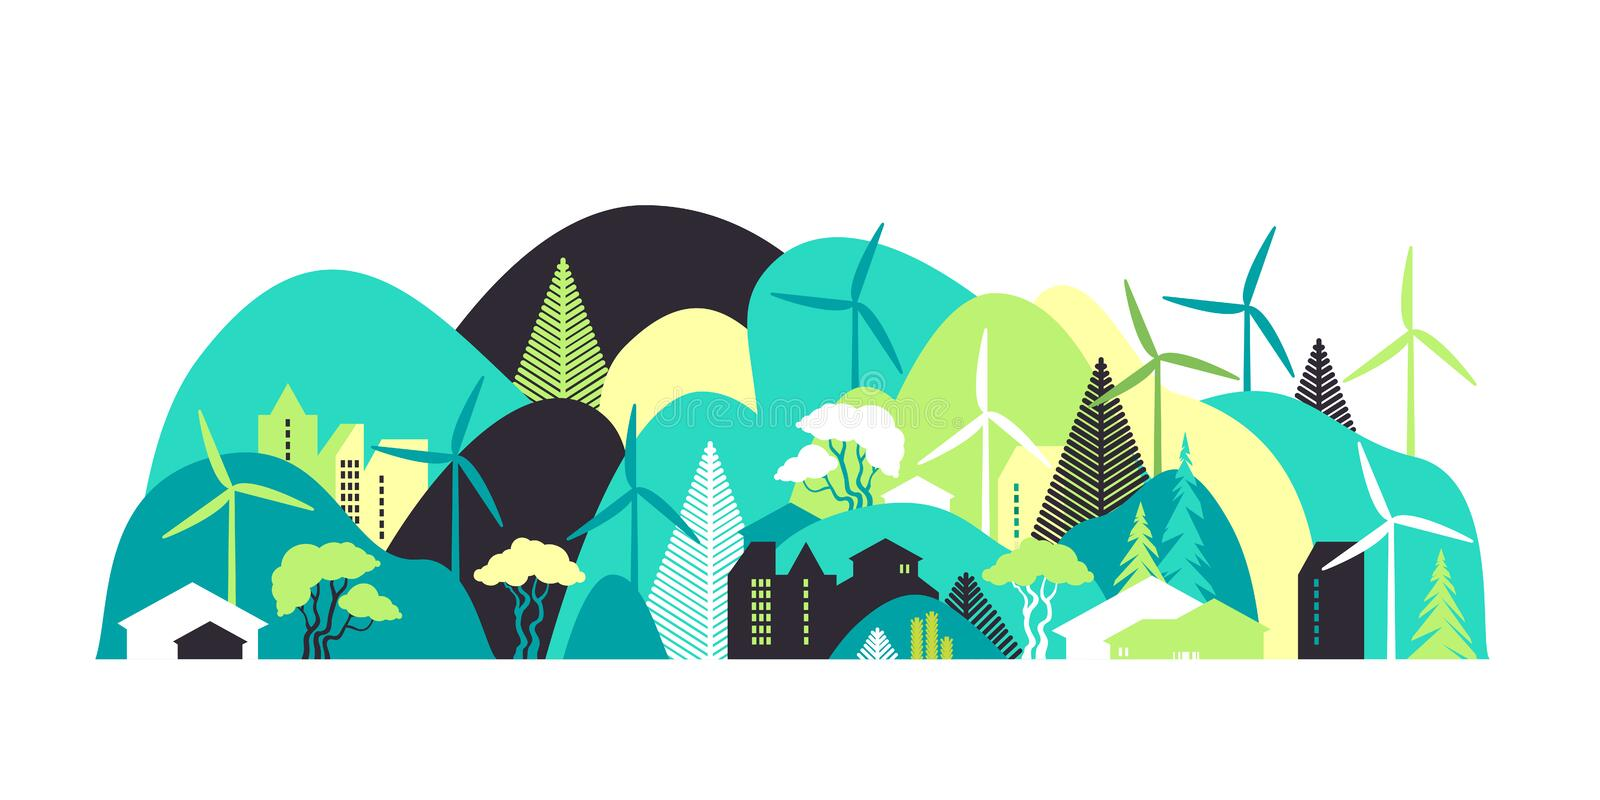 Cityscape with green hills. Preservation of the environment, ecology, alternative energy sources. Vector illustration royalty free illustration